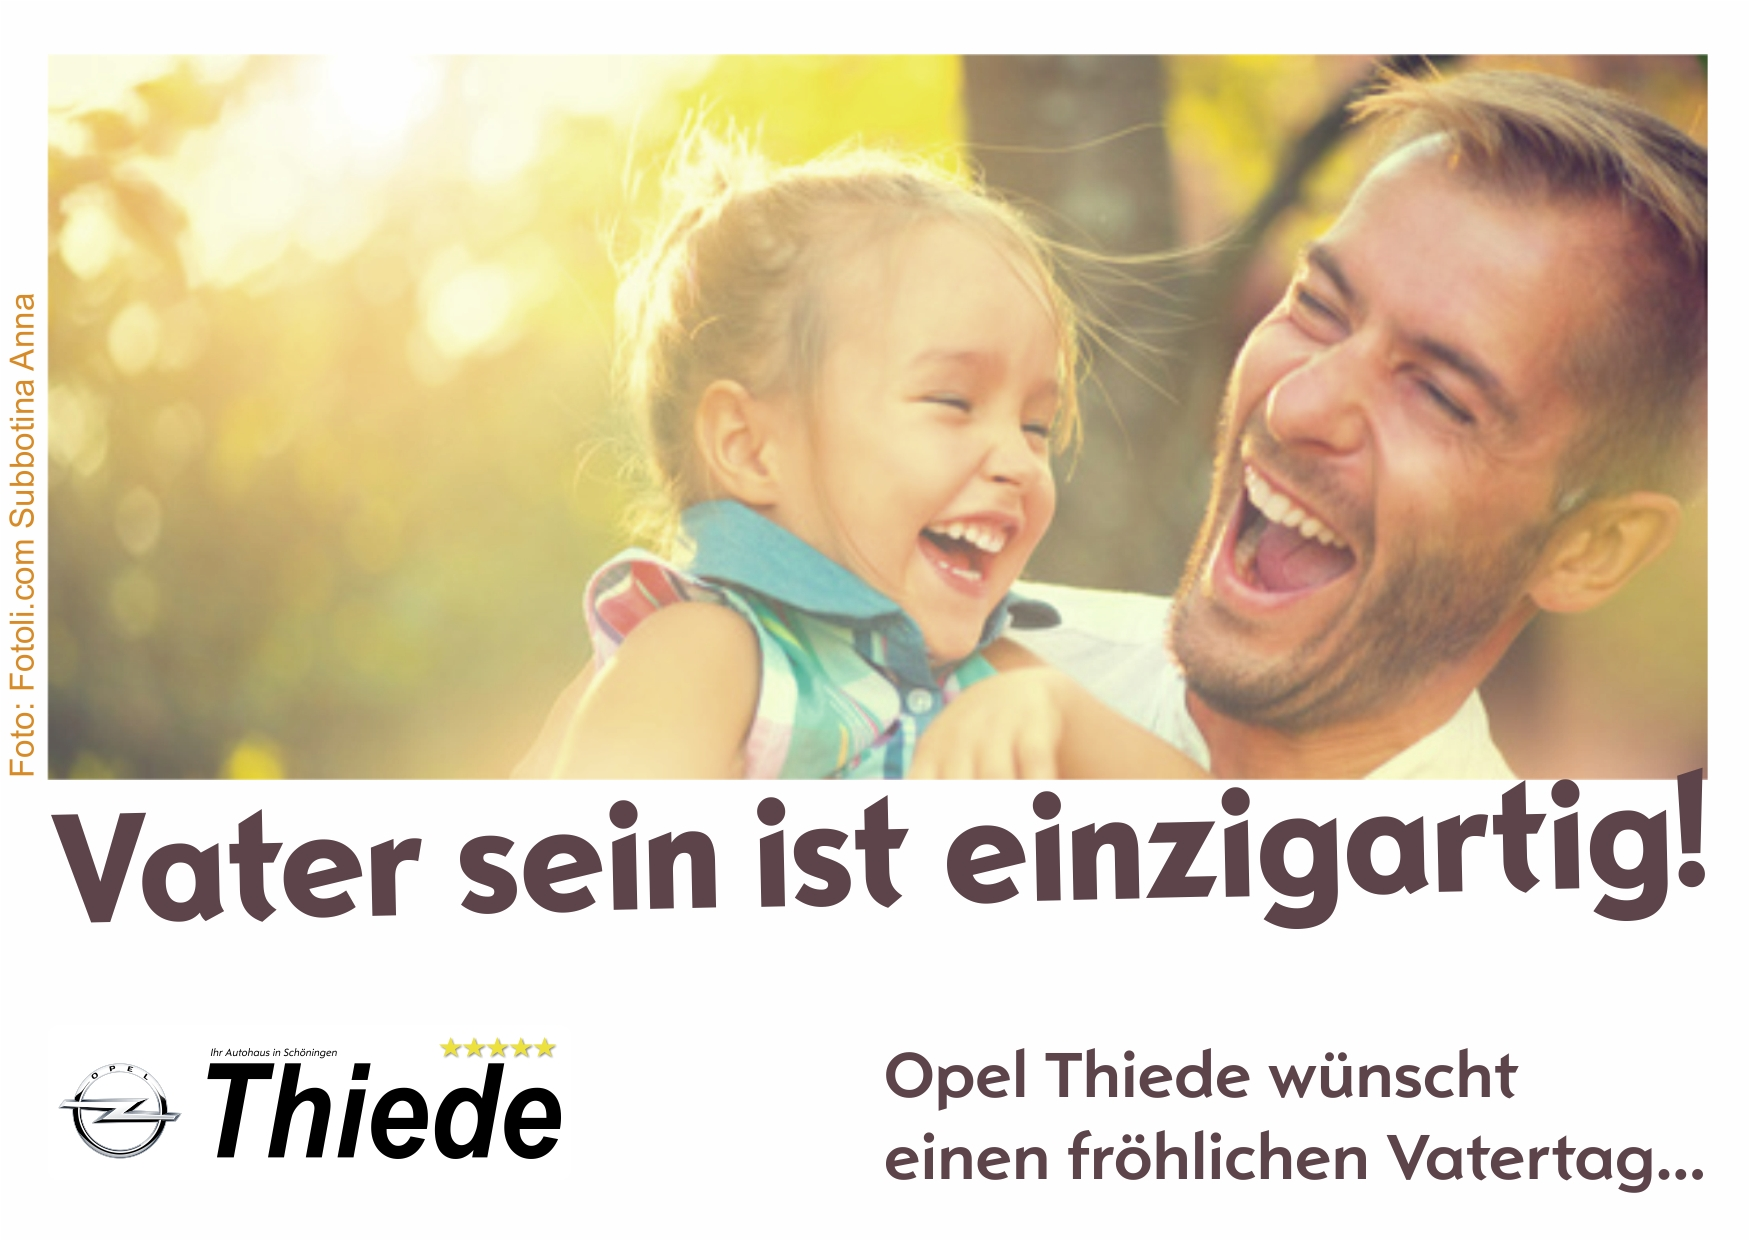 Opel-Väter-Kinder-Familien-Autohaus-Thiede